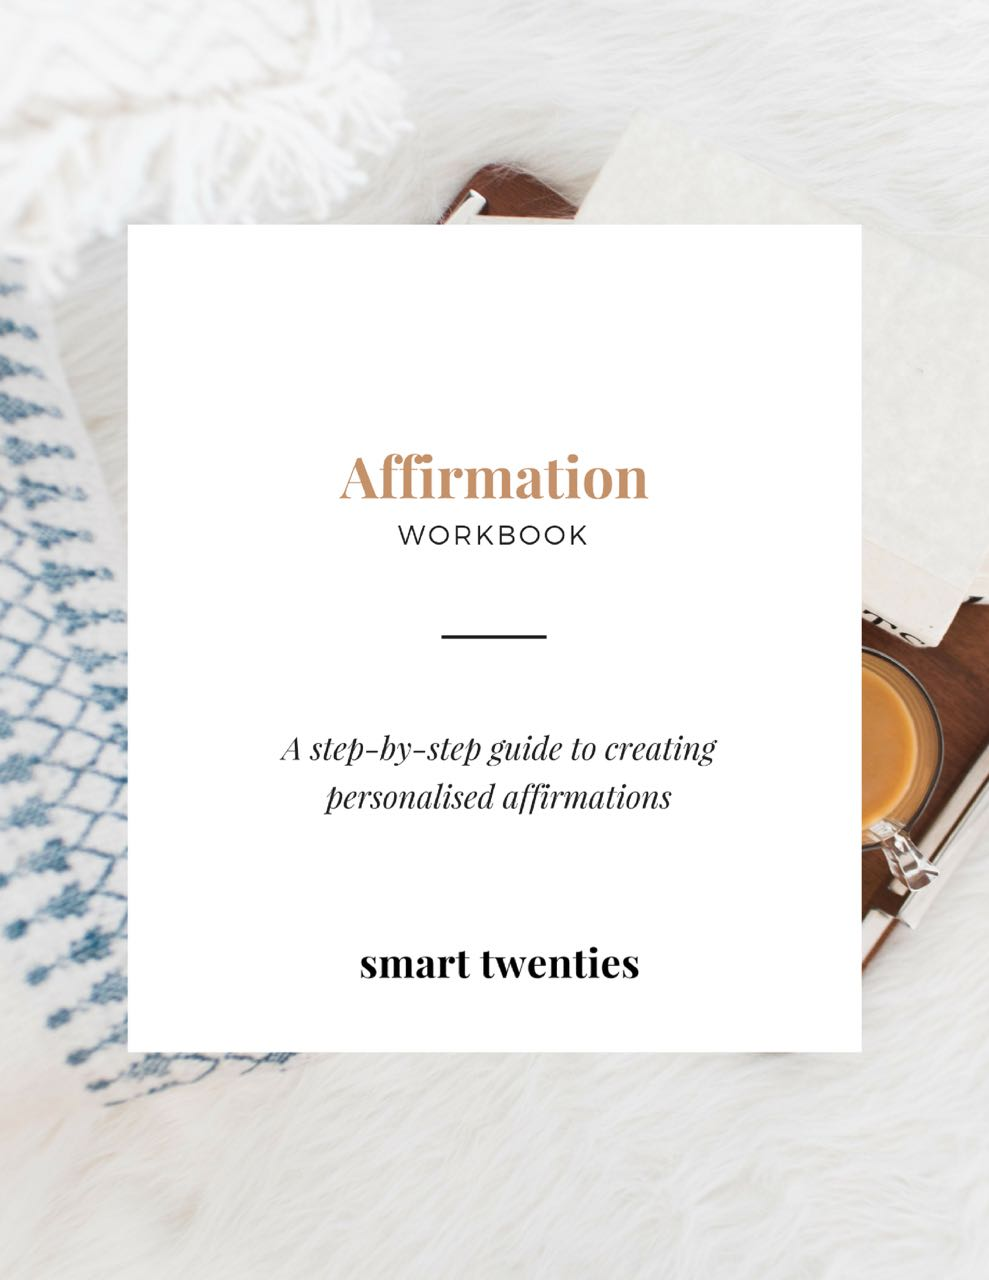 A workbook to help you create your own affirmations and use the law of attraction to achieve your goals